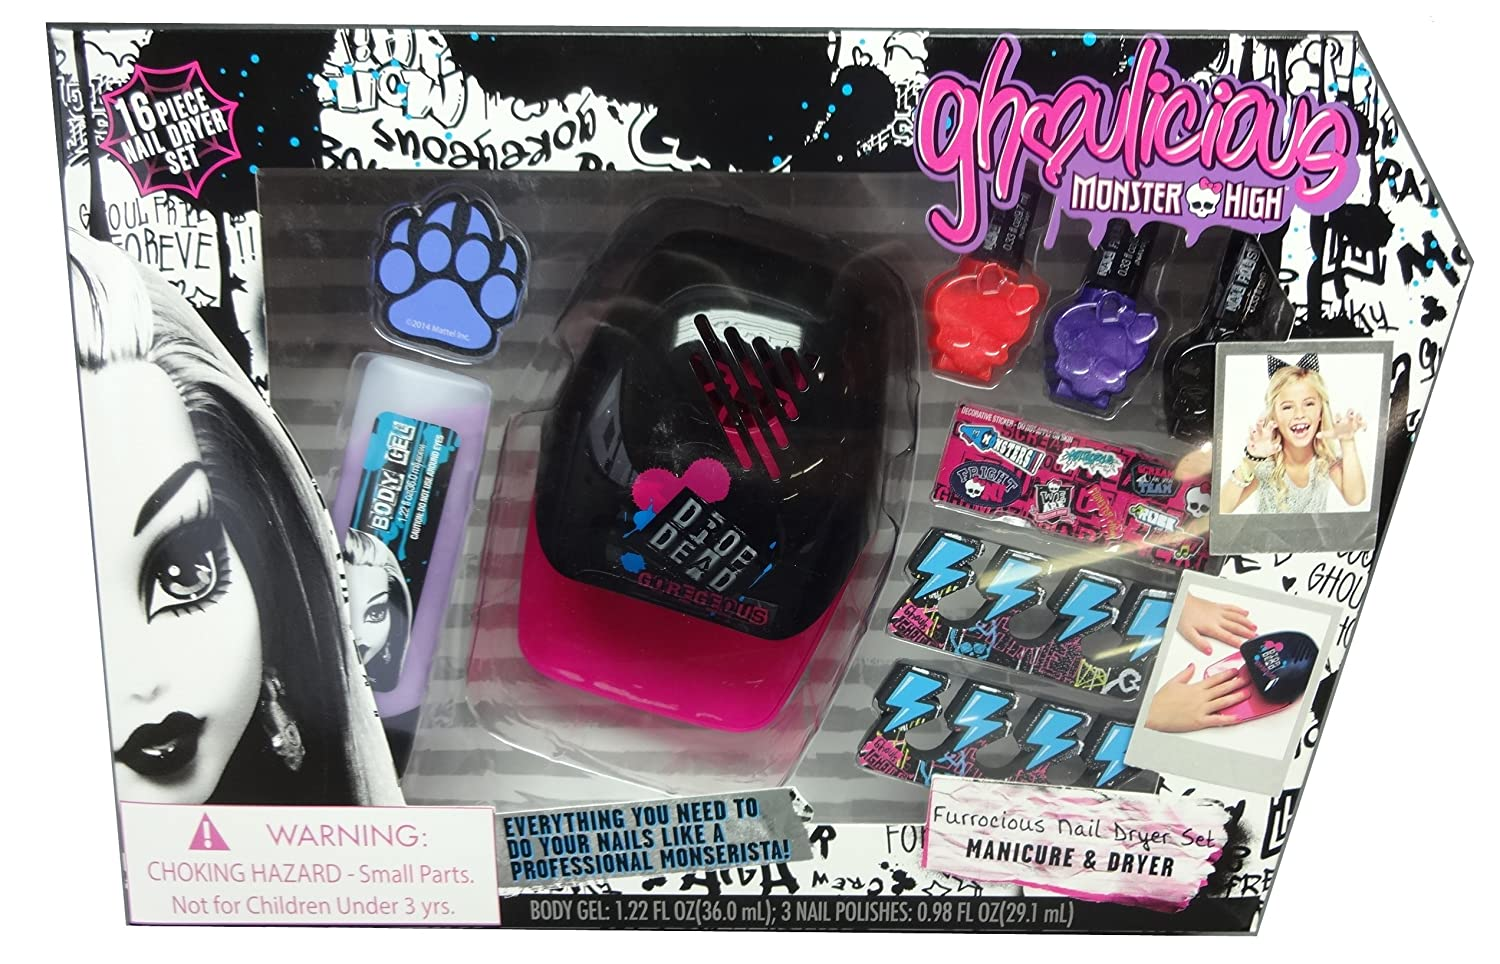 Amazon.com: Monster High Ghoulicious Furrocious Nail Dryer ...